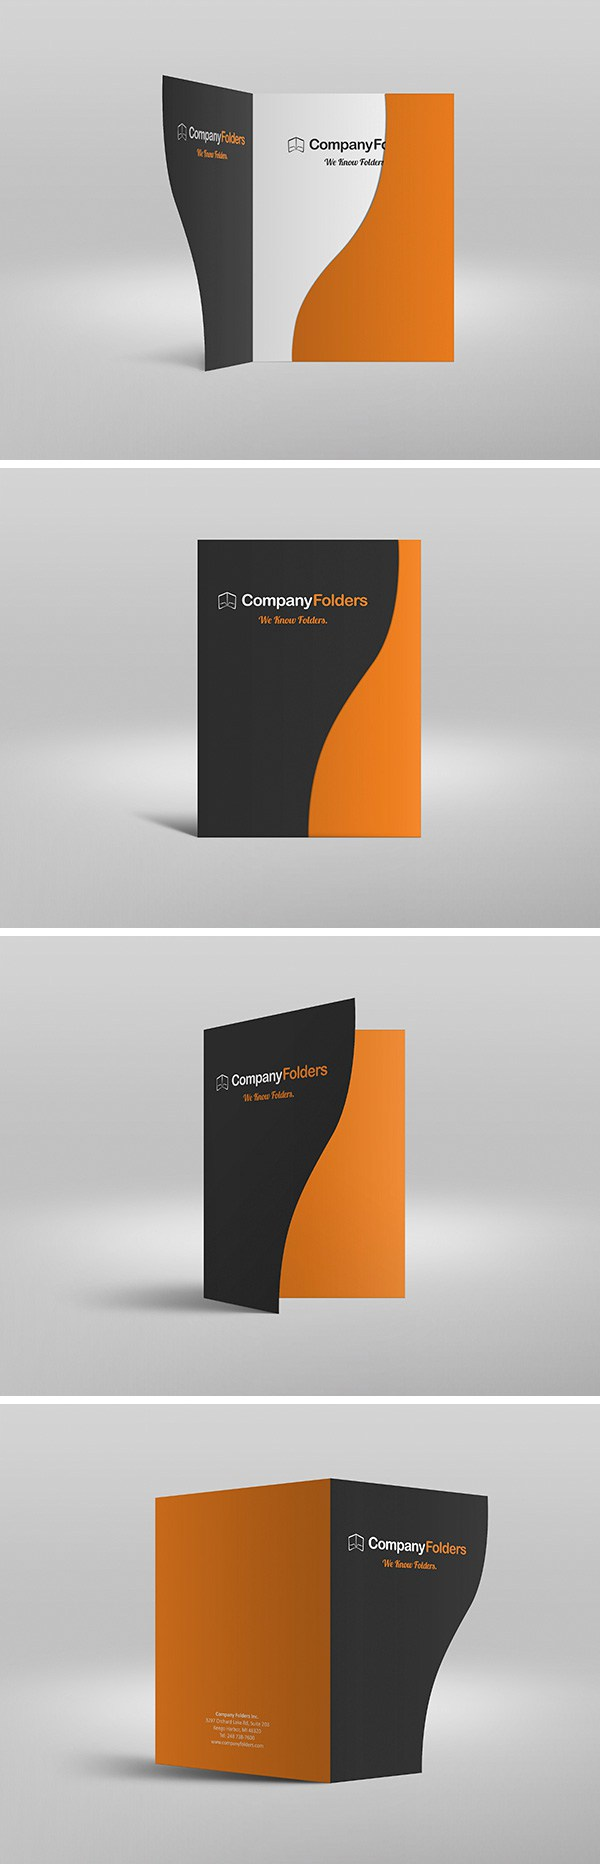 serpentine presentation folder mockup mockup catalog more